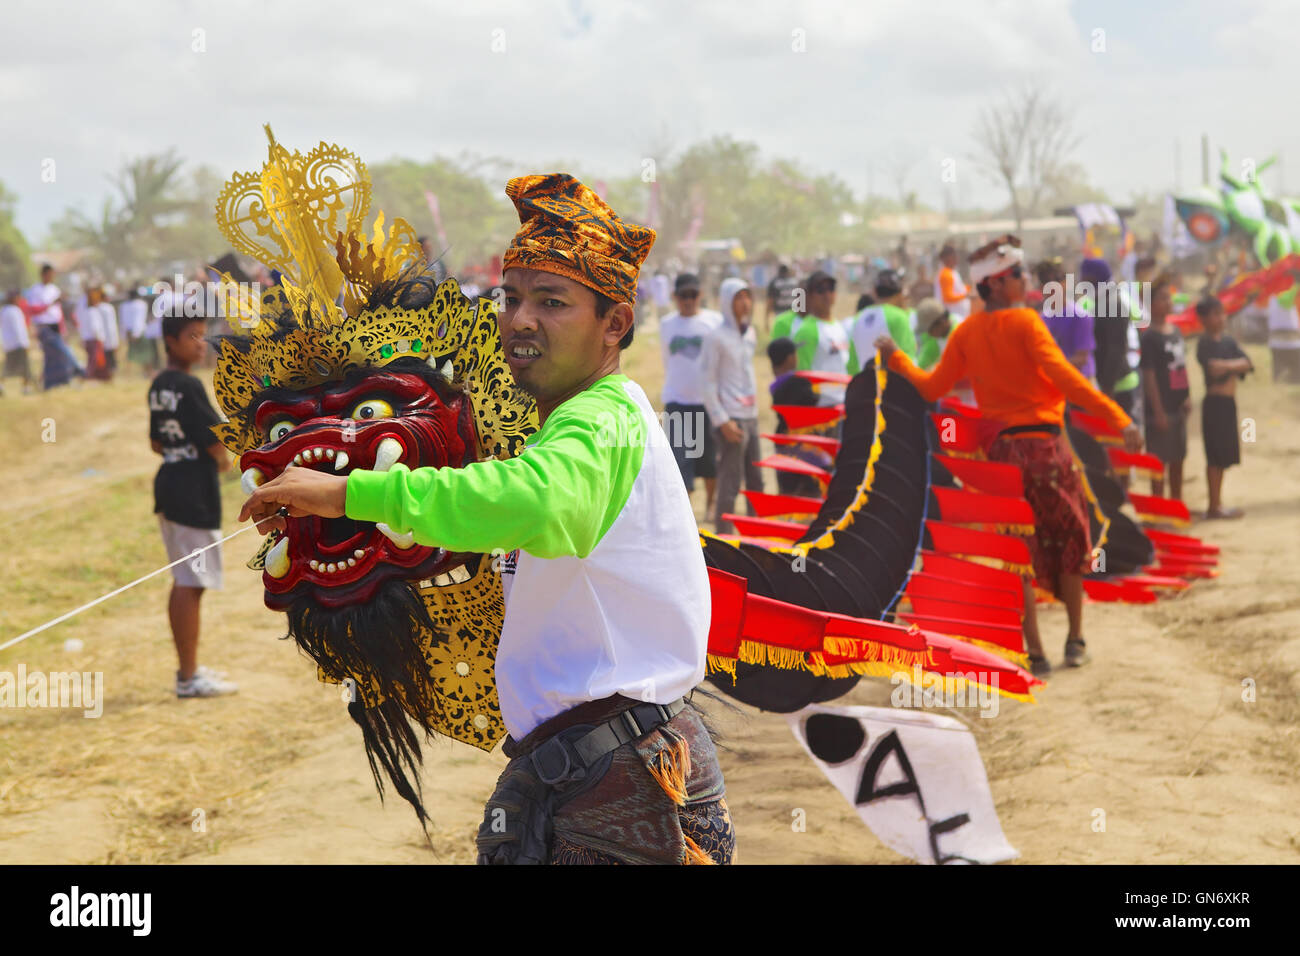 Sanur, Bali Island, Indonesia -July 15, 2012: Balinese man launching kite with head of mythic dragon and long tail. - Stock Image